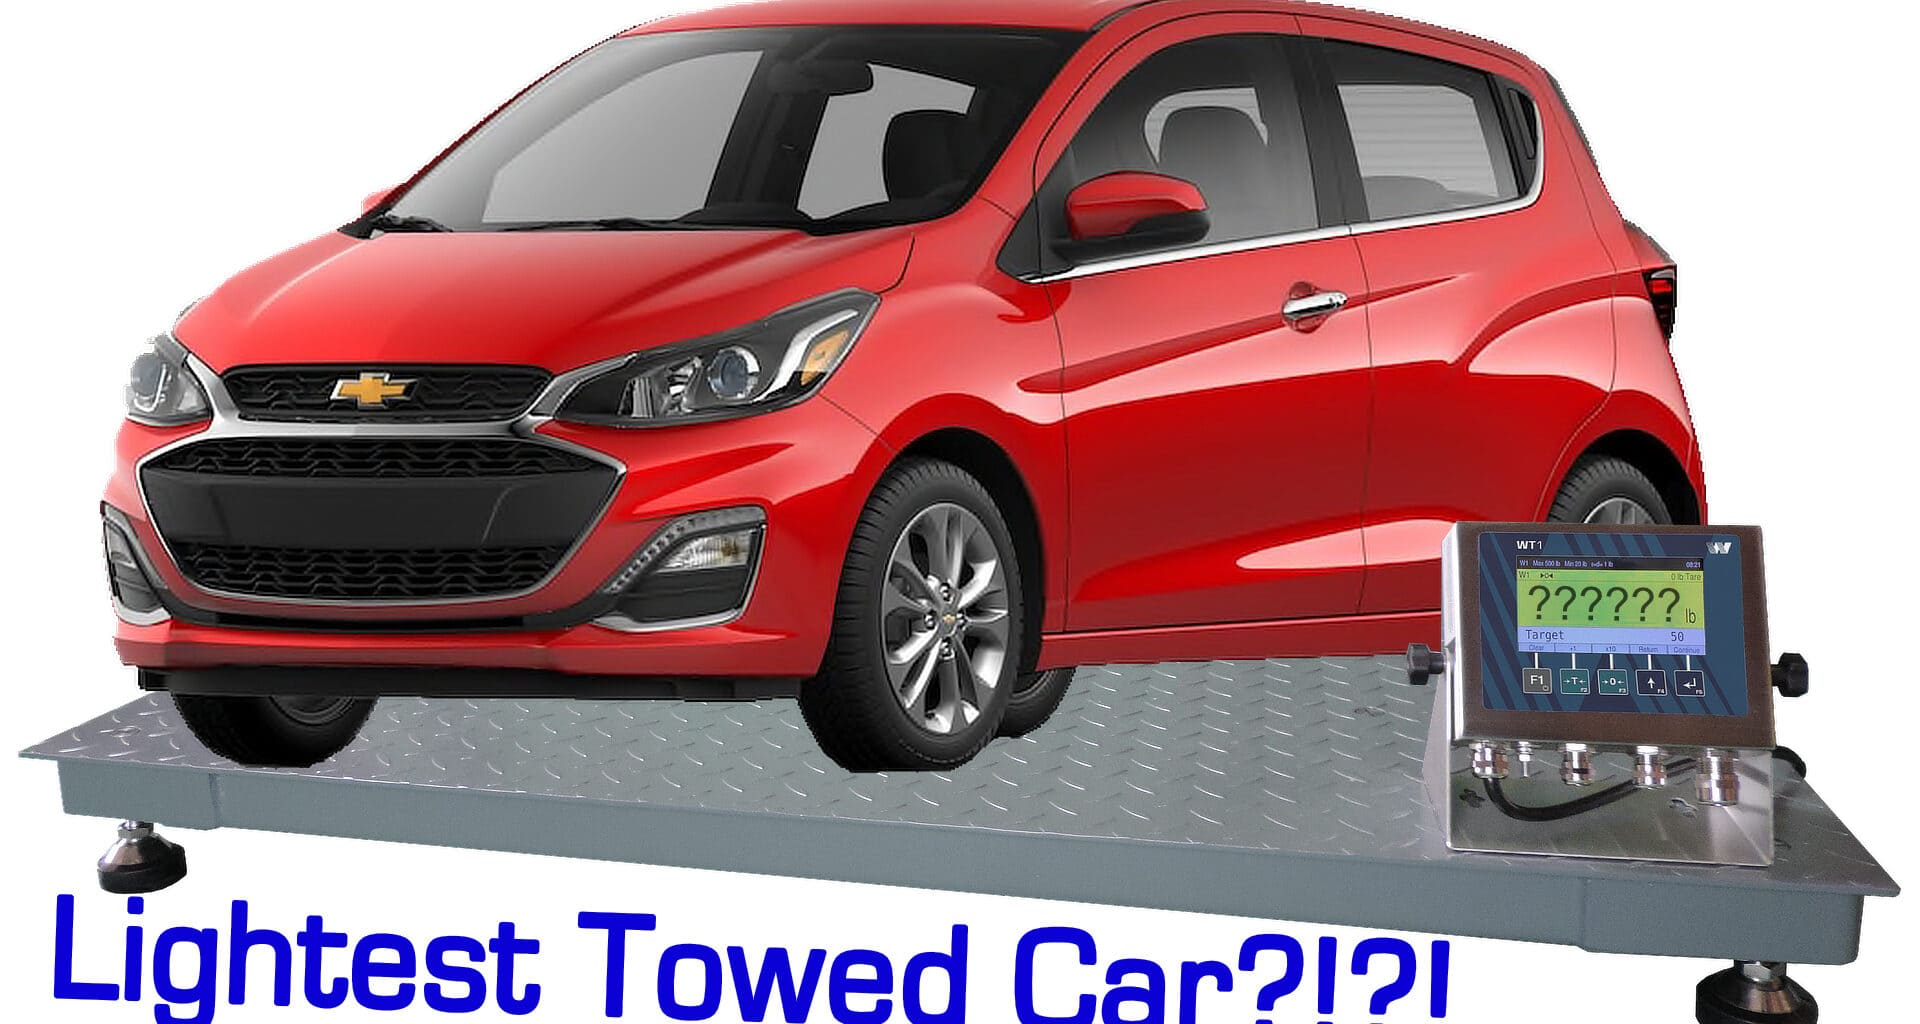 Is the Chevy Spark the lightest car to tow behind a motorhome?